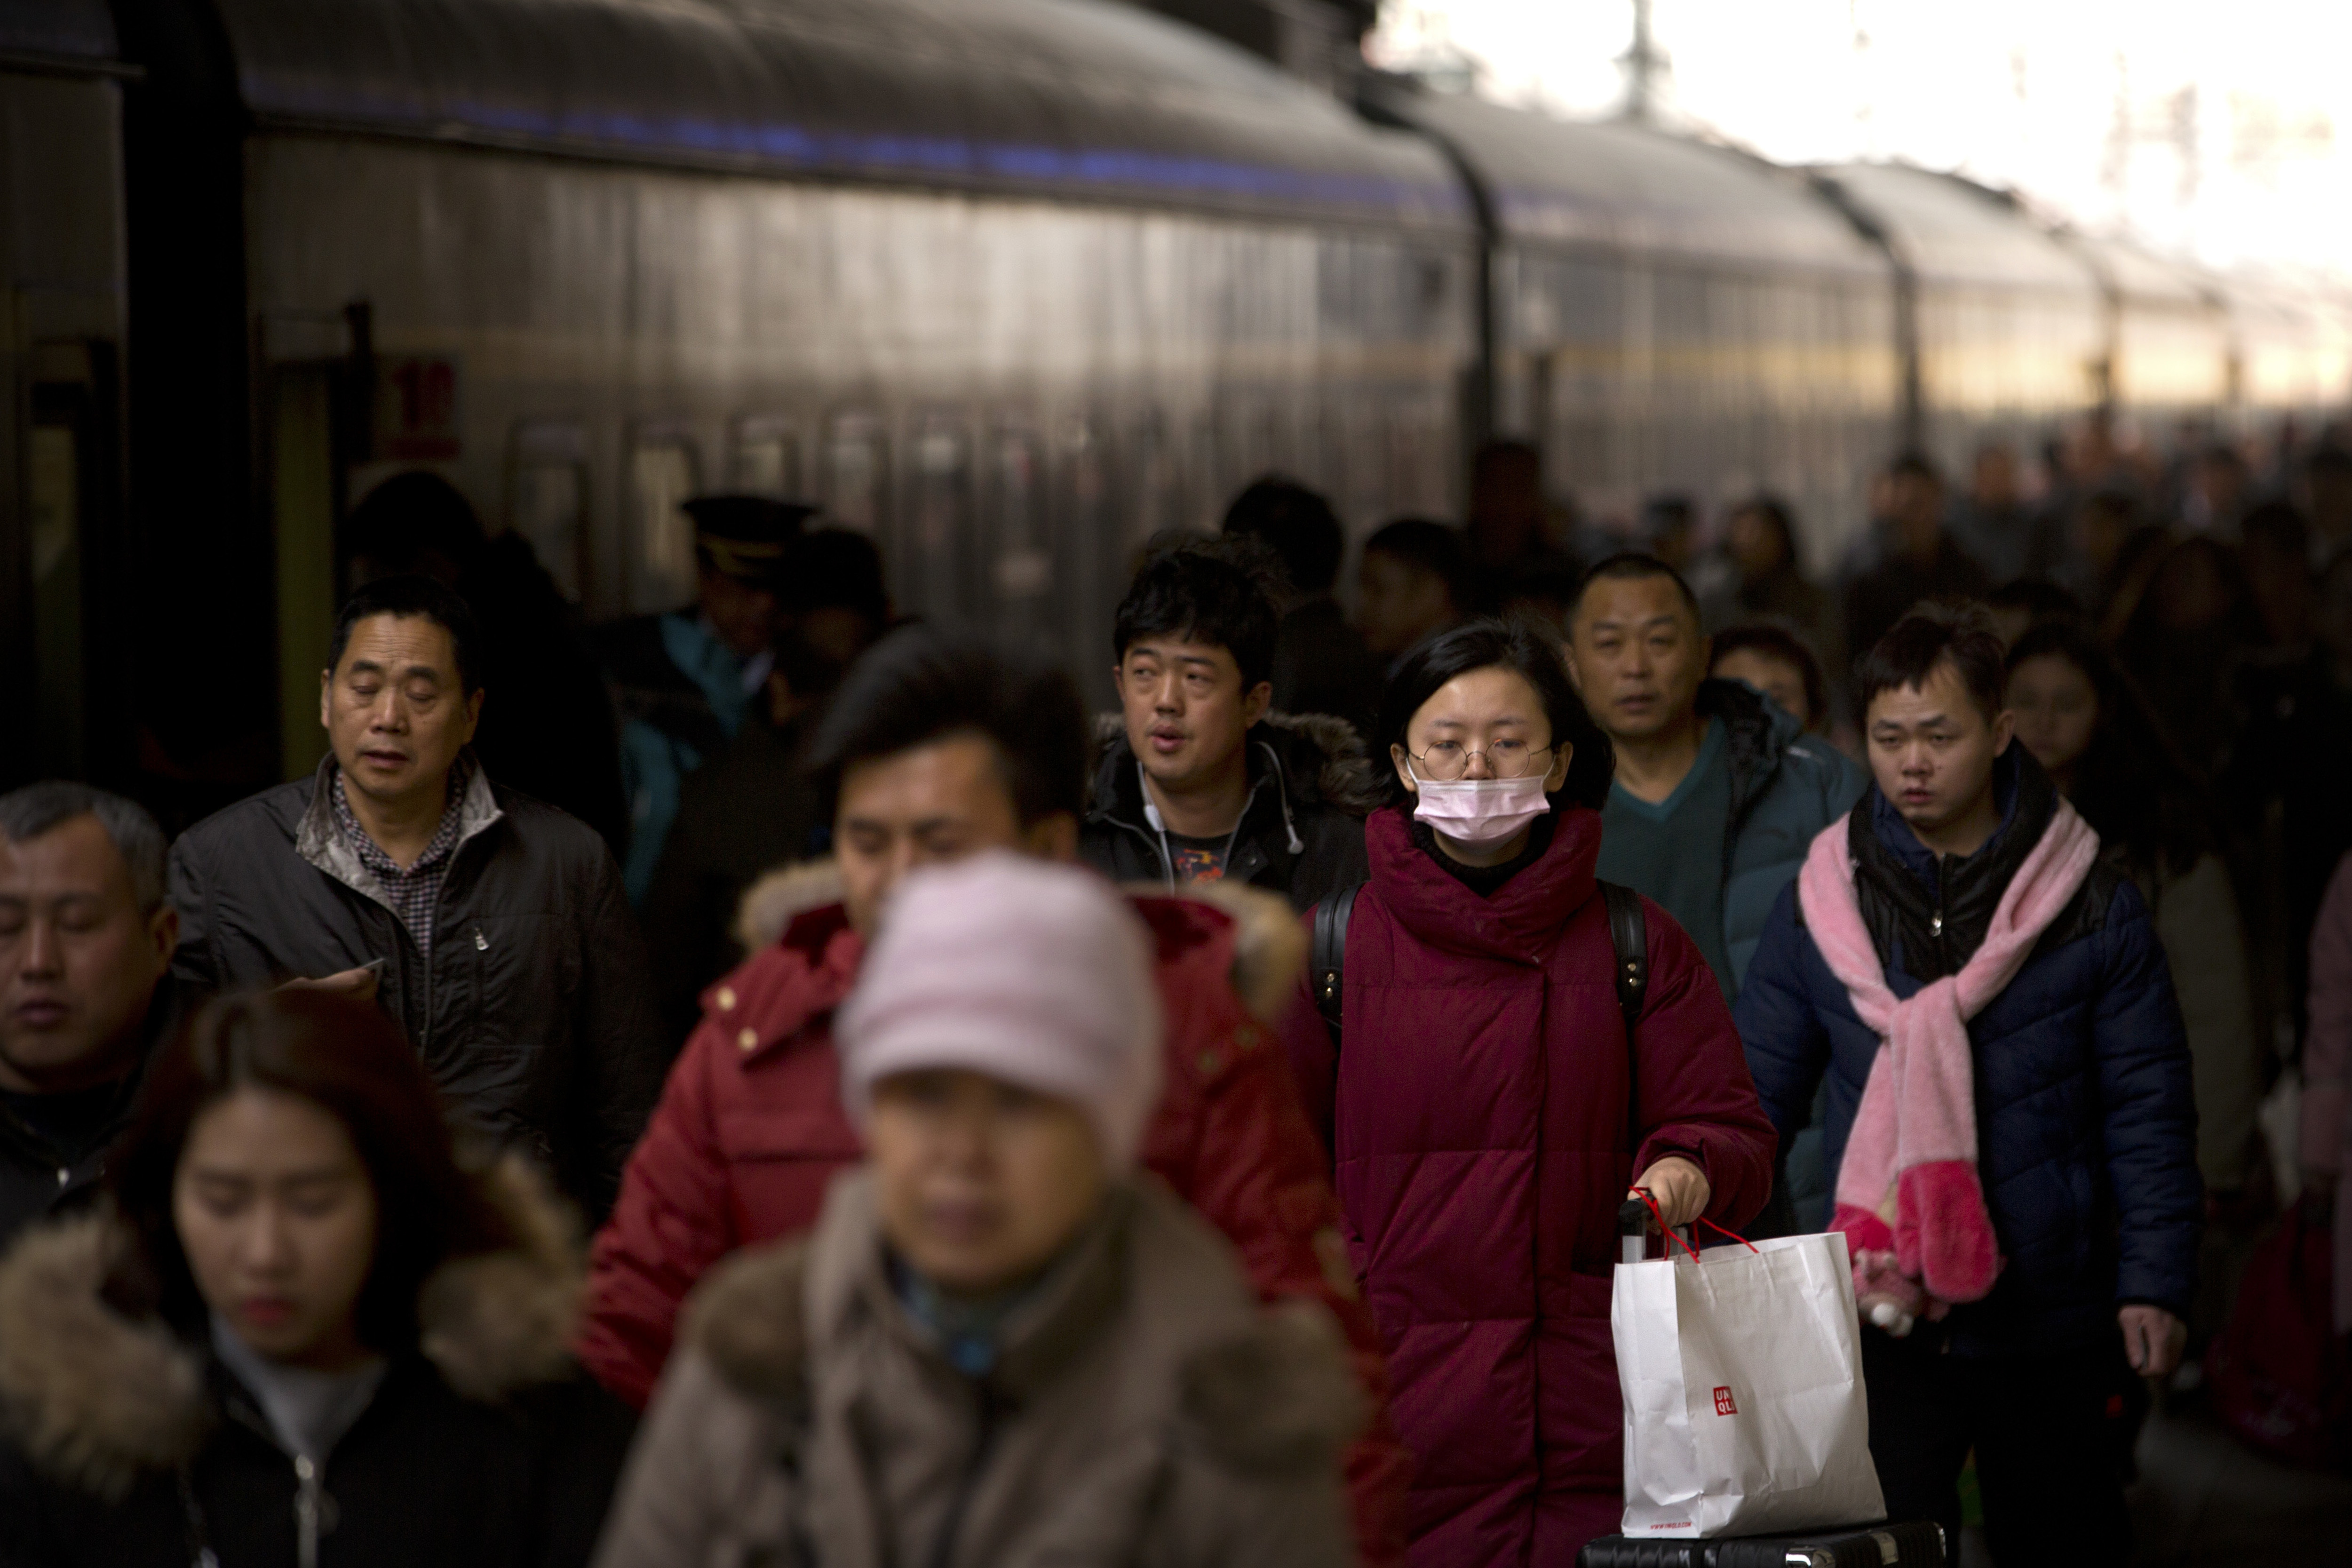 People walk to board a train at the Beijing Railway Station (Mark Schiefelbein/AP)